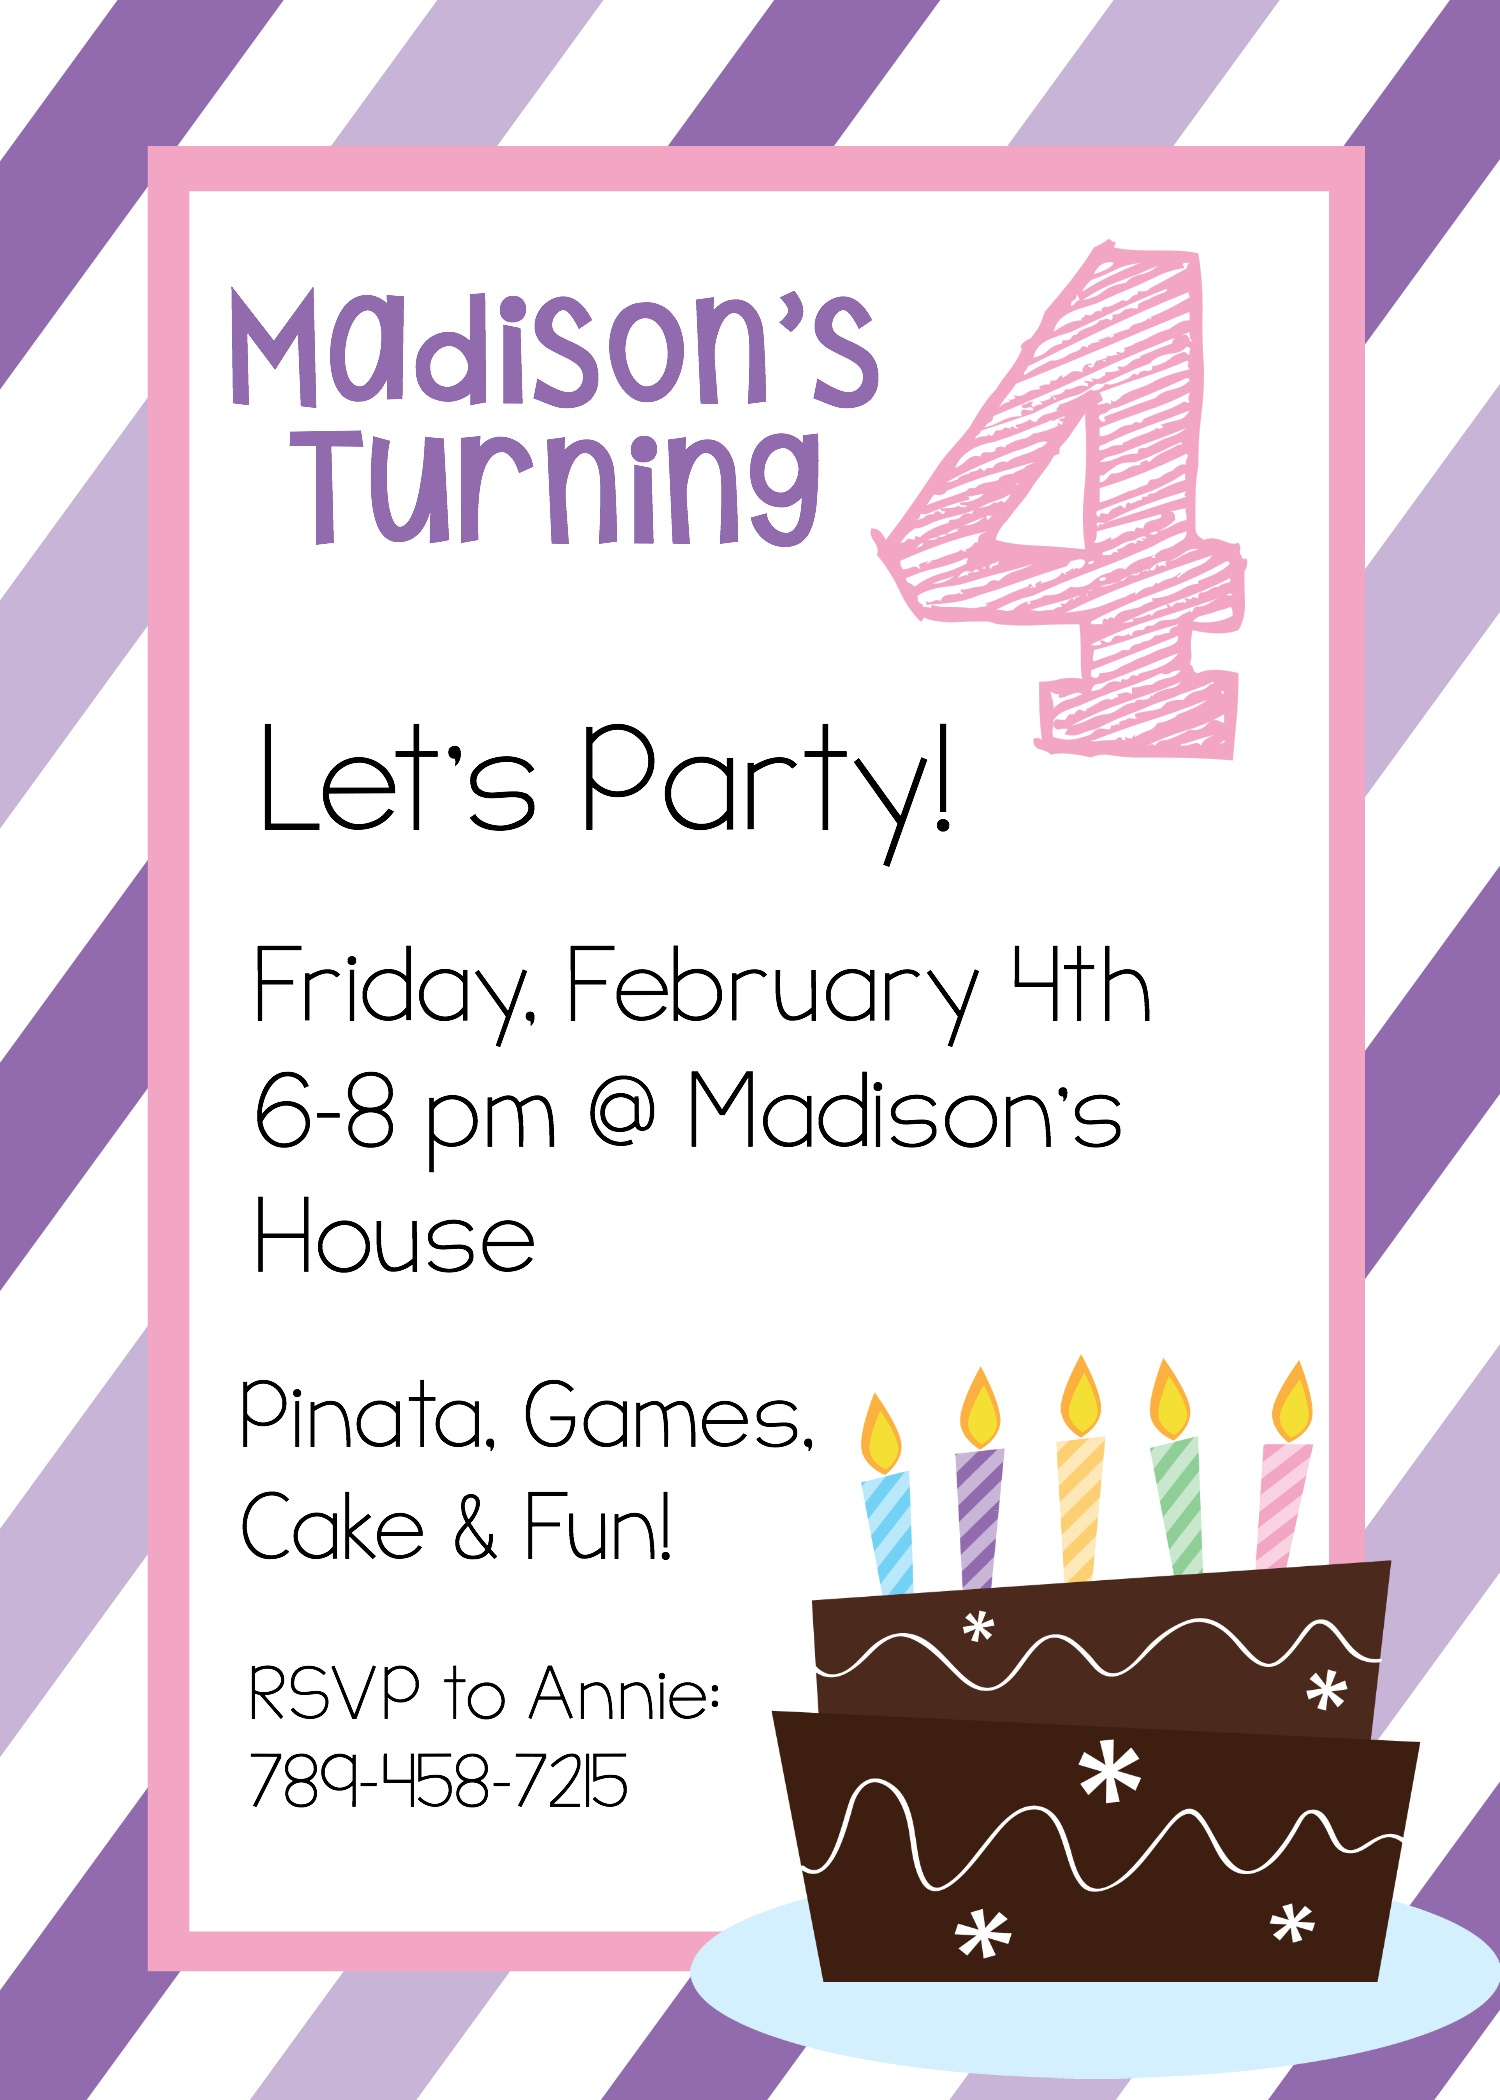 Birthday Invitations Online Free Printables - Tutlin.psstech.co - Birthday Party Invitations Online Free Printable